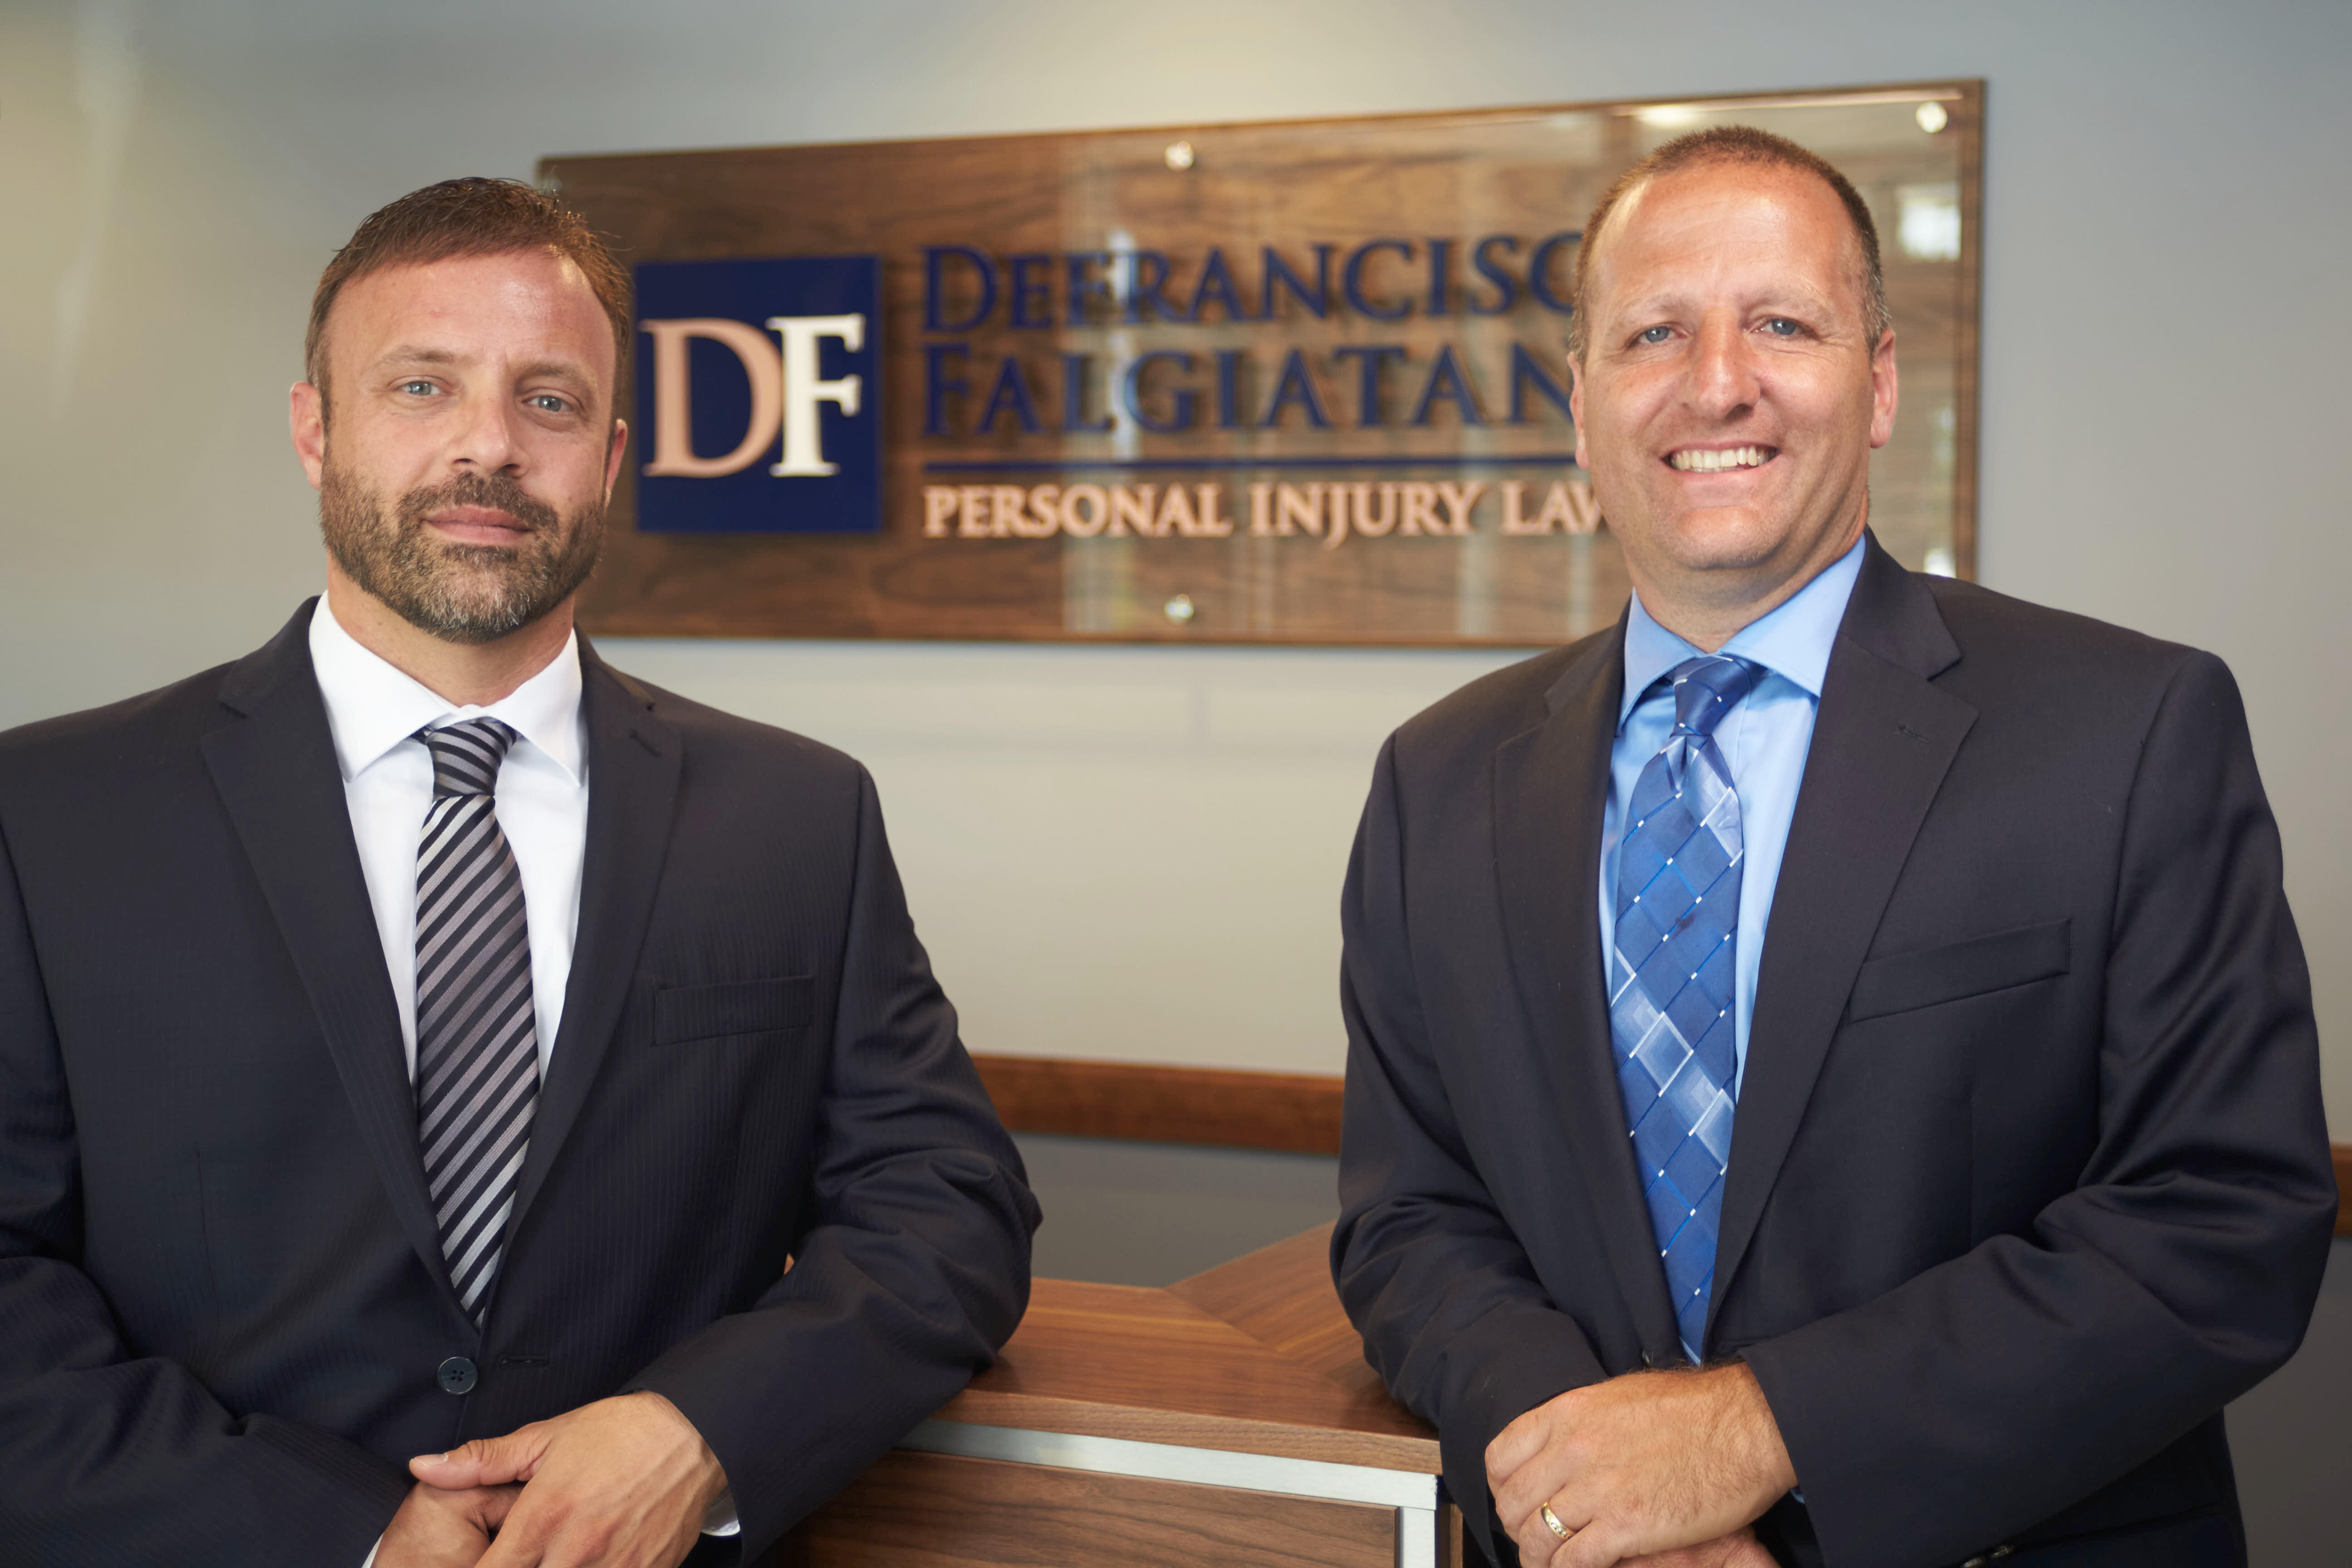 DeFrancisco & Falgiatano Personal Injury Lawyers image 5